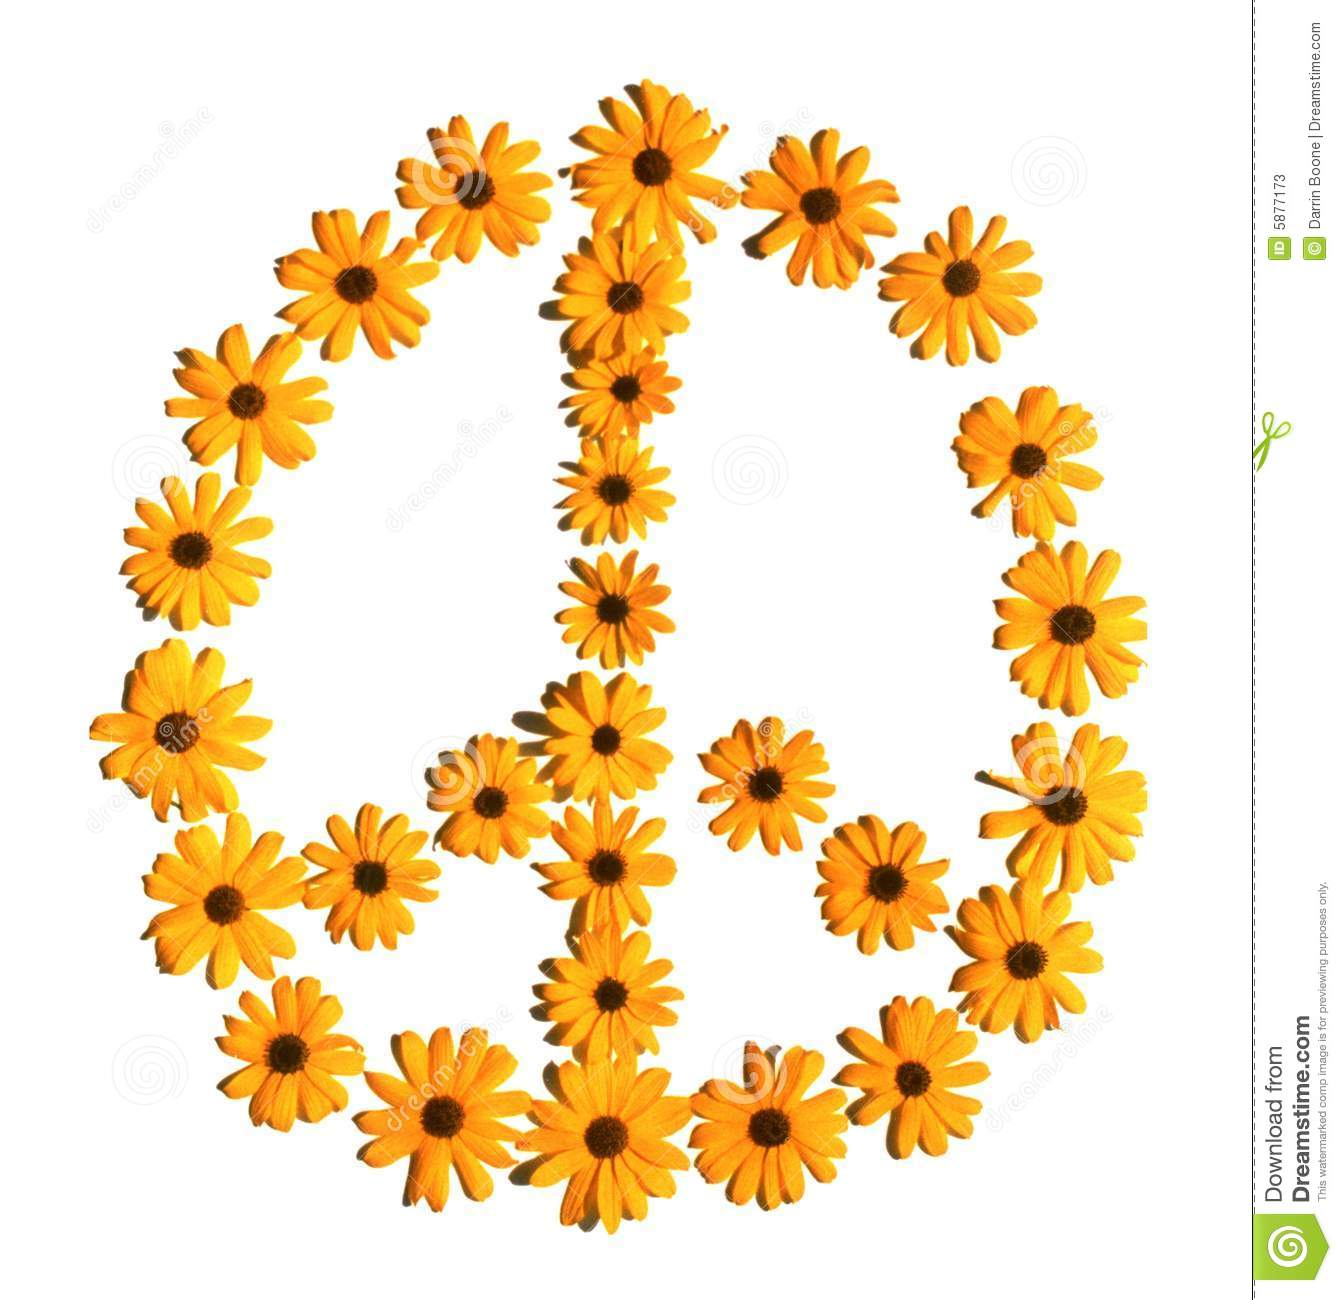 Flower peace sign stock image image of peace blossom 5877173 flower peace sign biocorpaavc